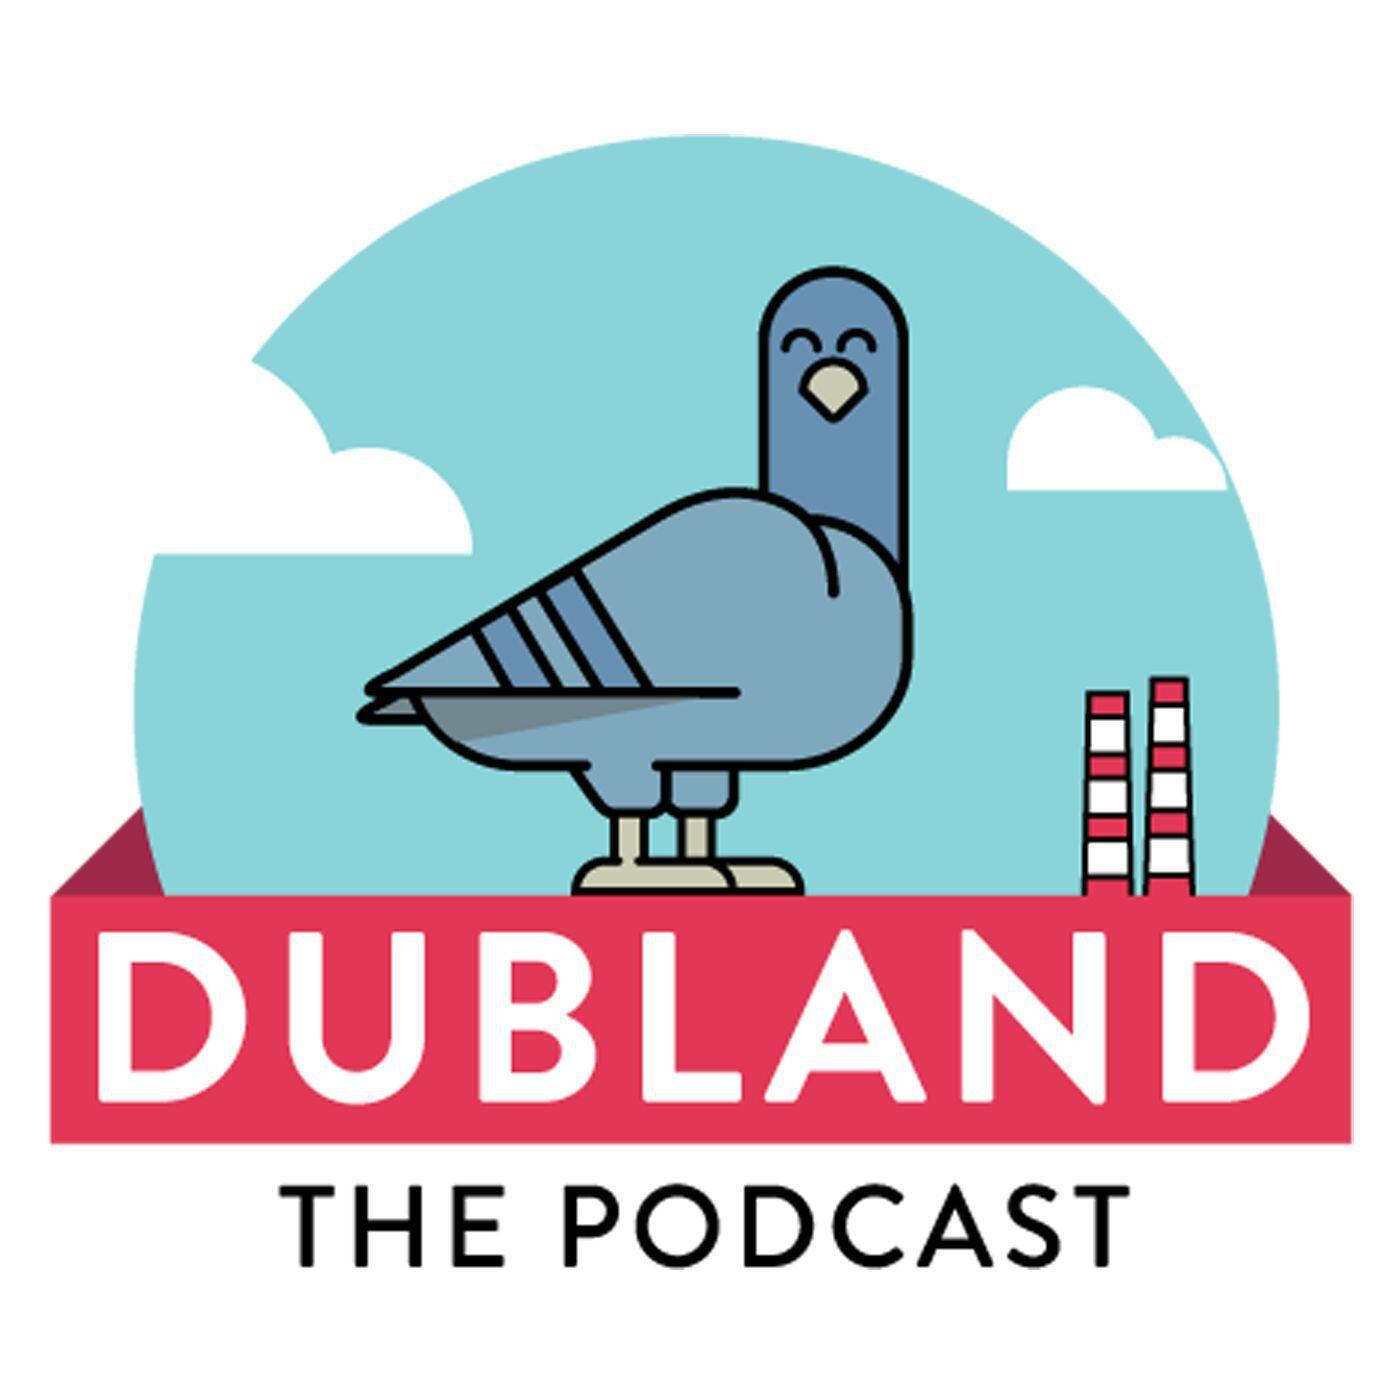 65 DUBLAND The Podcast